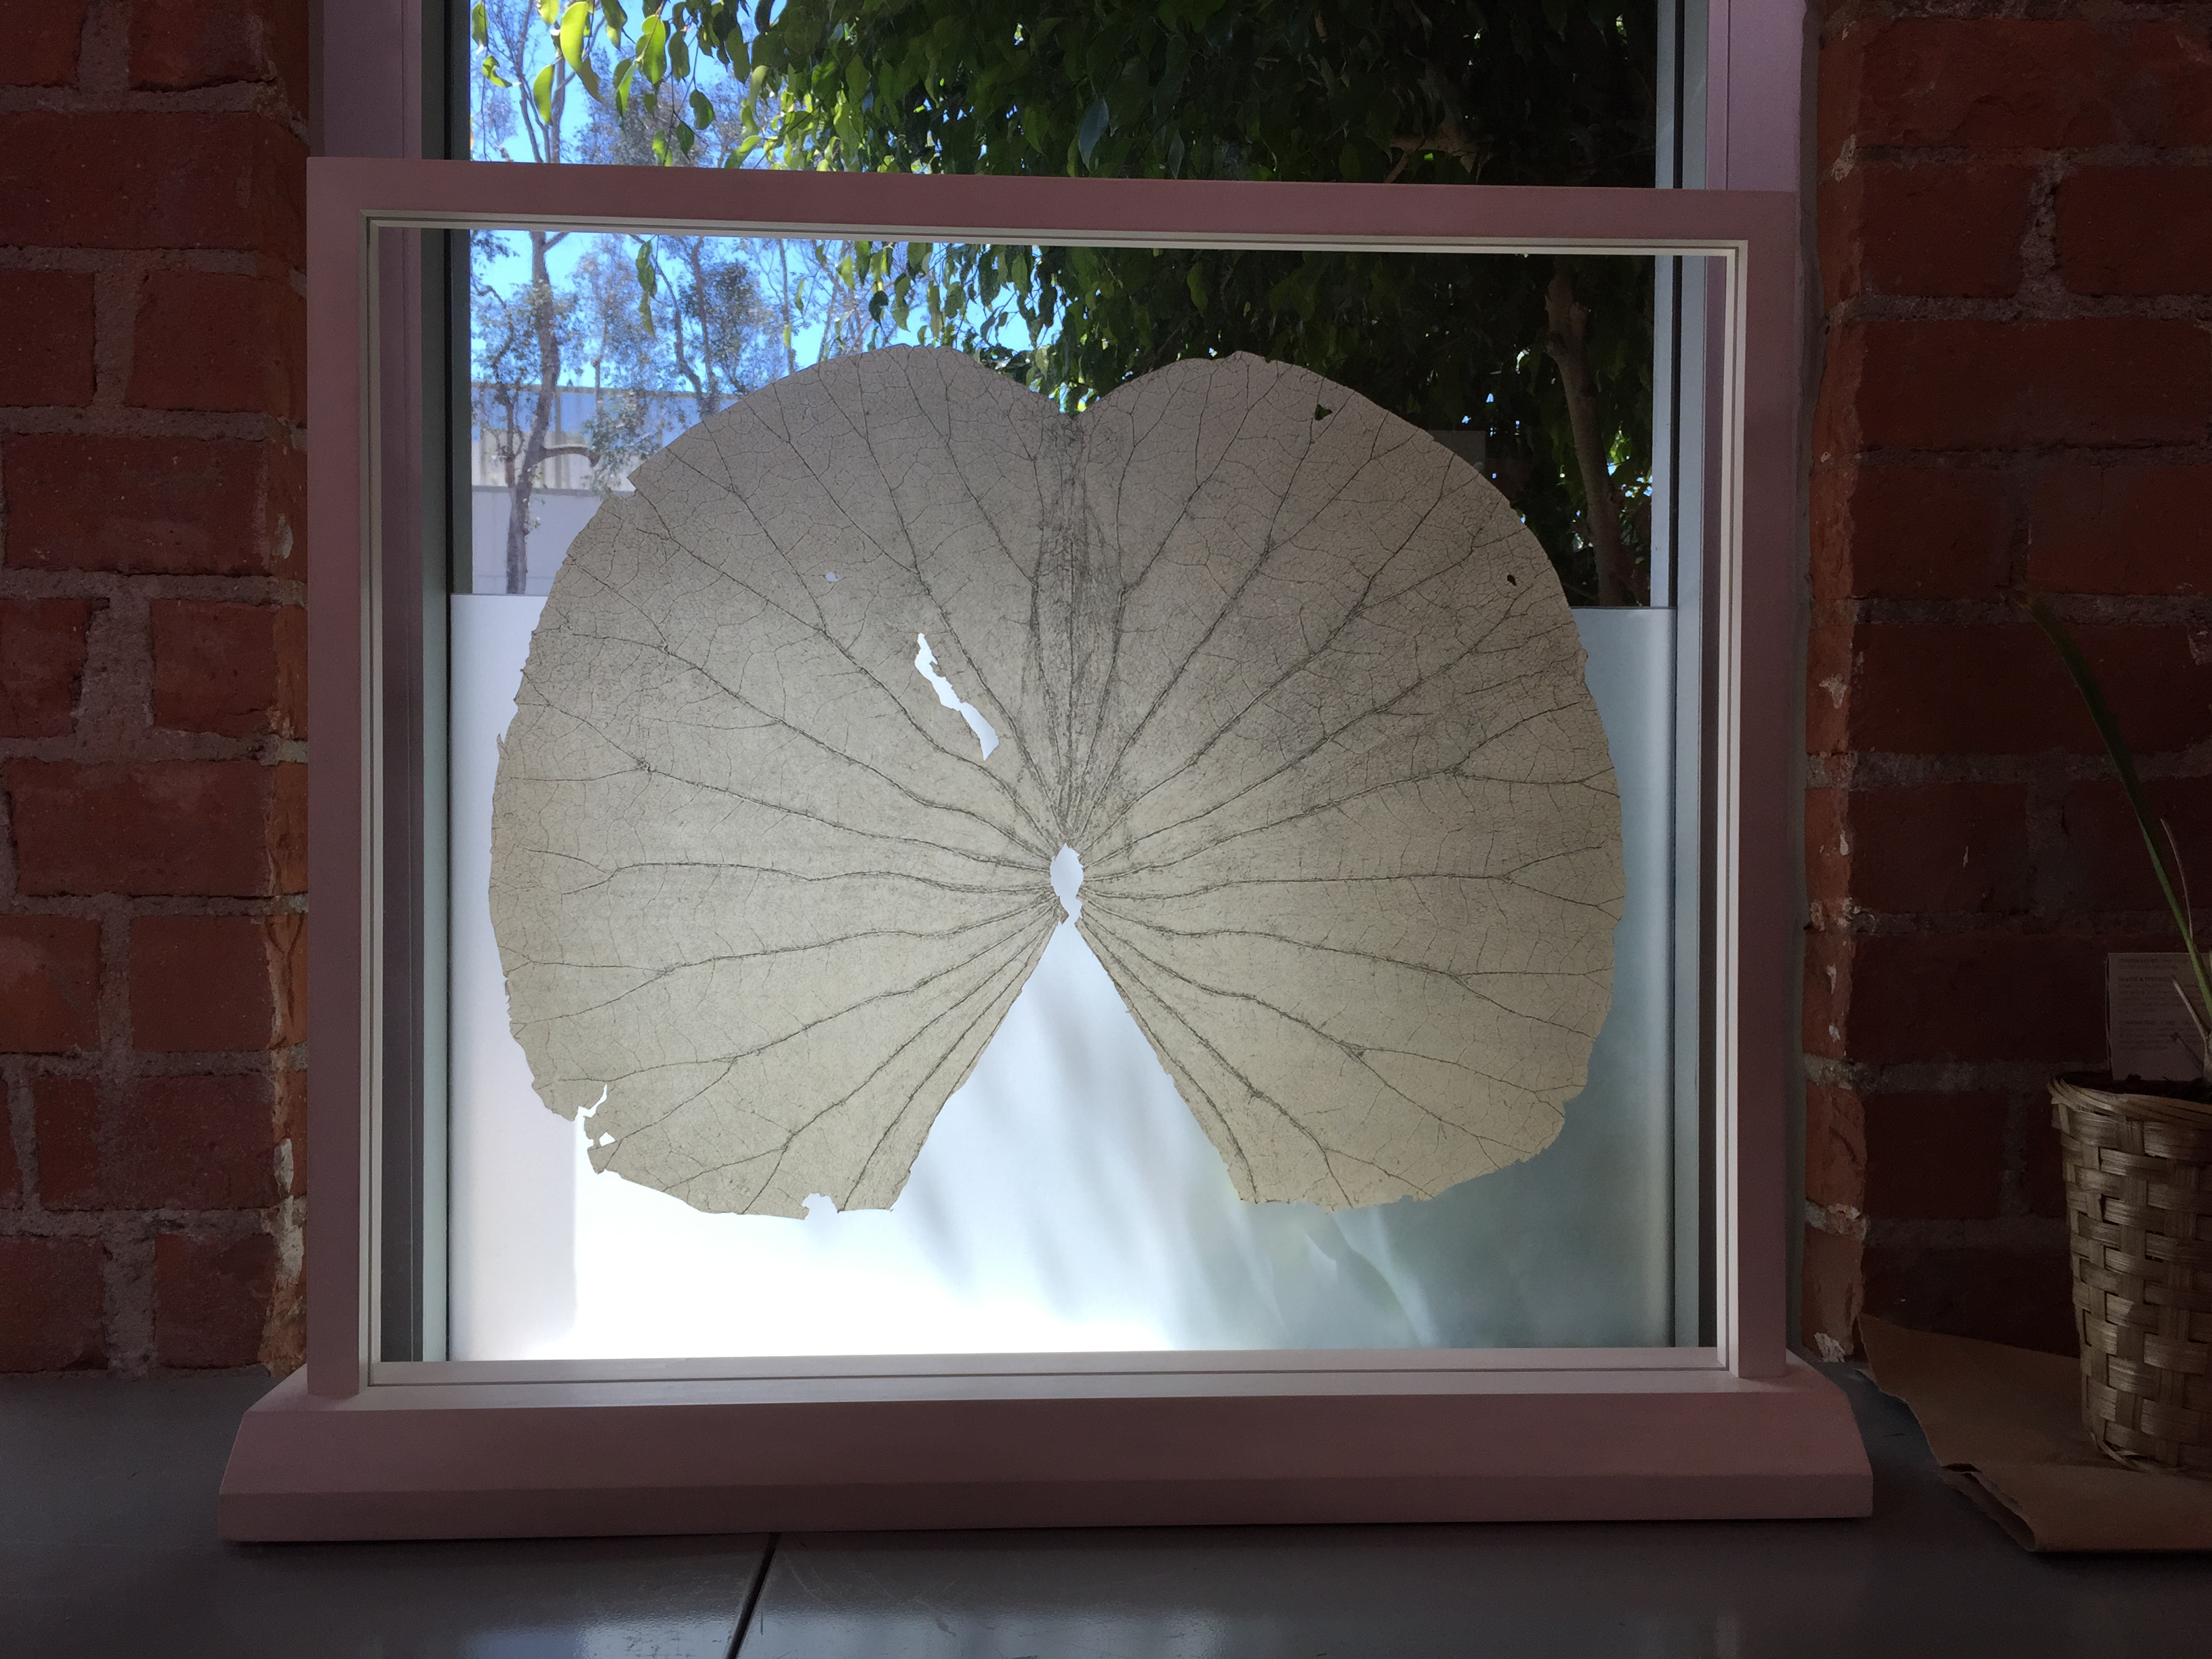 GABRIEL OROZCO Lotus Leaves (Full Leaf), 2004 Soft ground etching on gampi, mounted between UV resistant plexi-glass in wood frame 25 1/2 x 28 1/2 inches Edition of 6